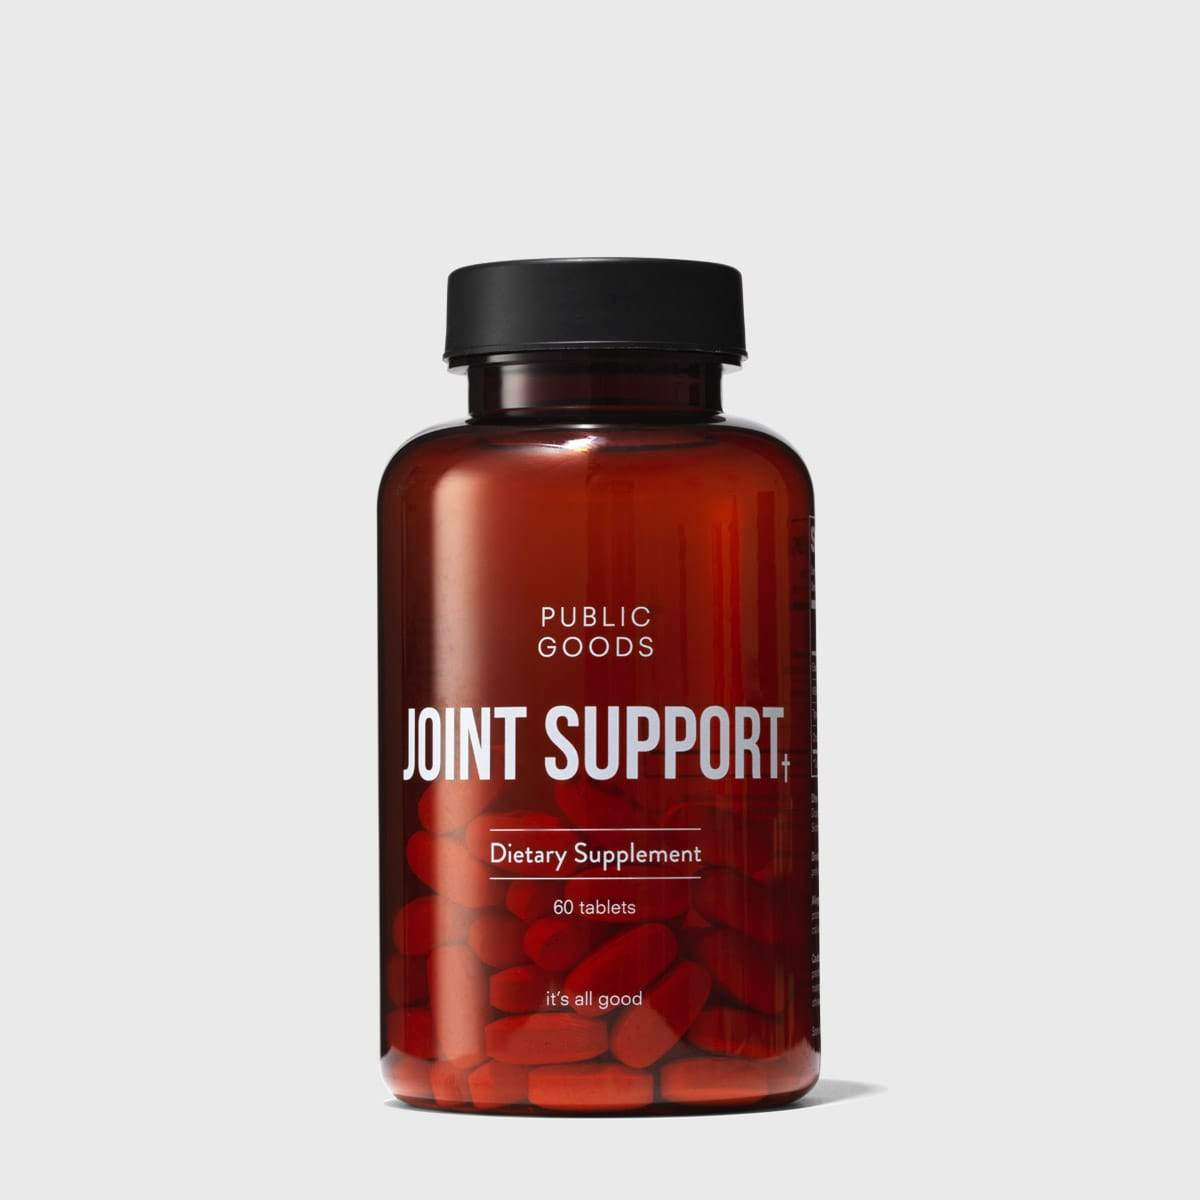 Public Goods Supplement Joint Support